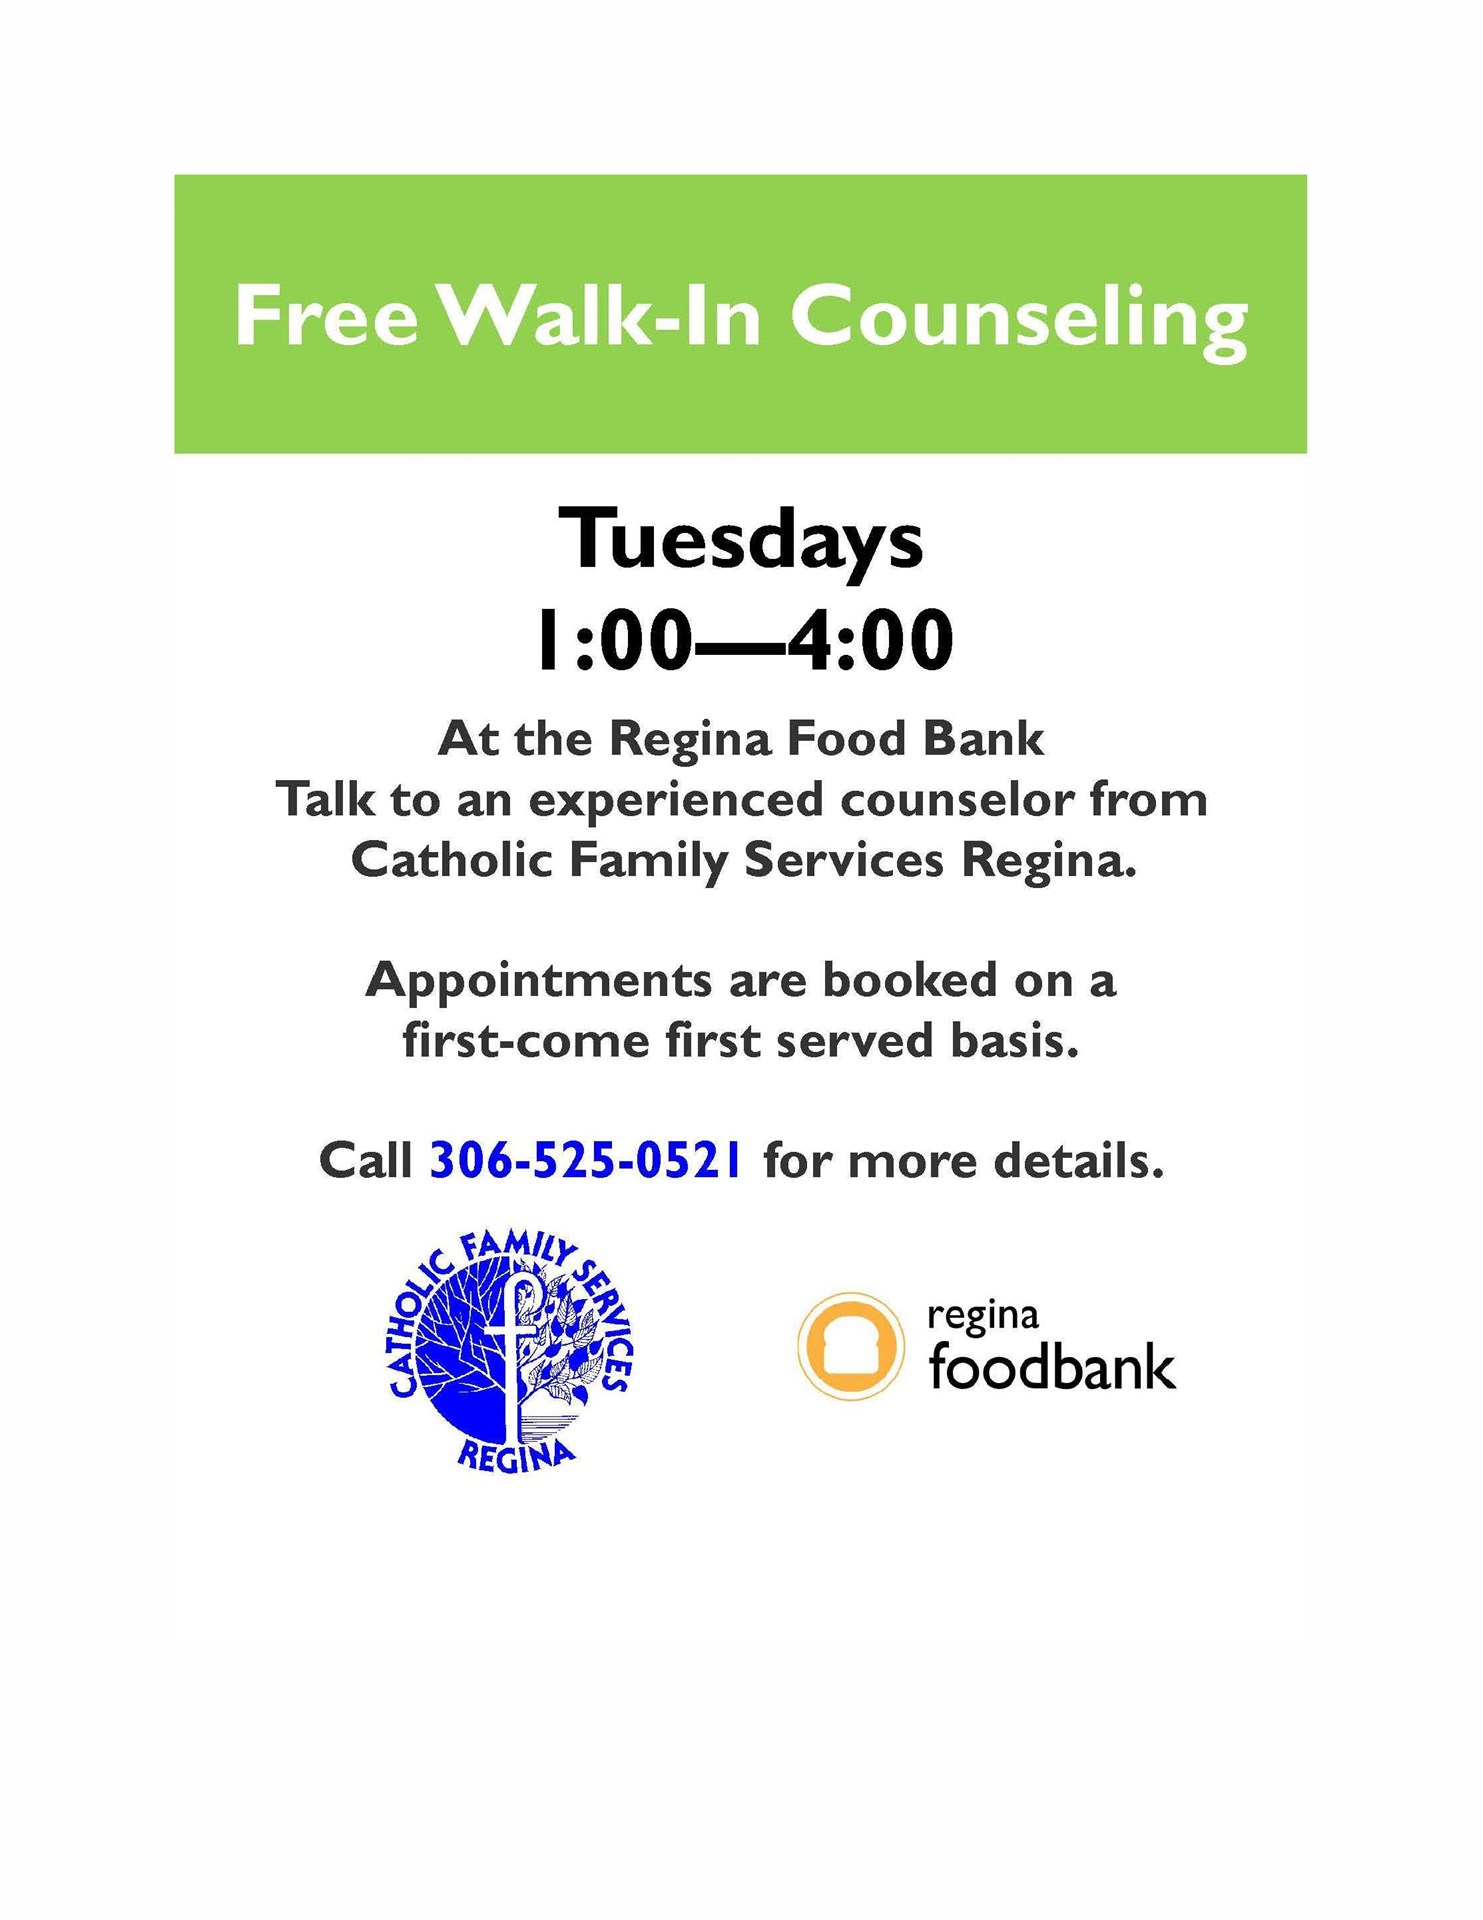 Food Bank Counselling - Free.jpg